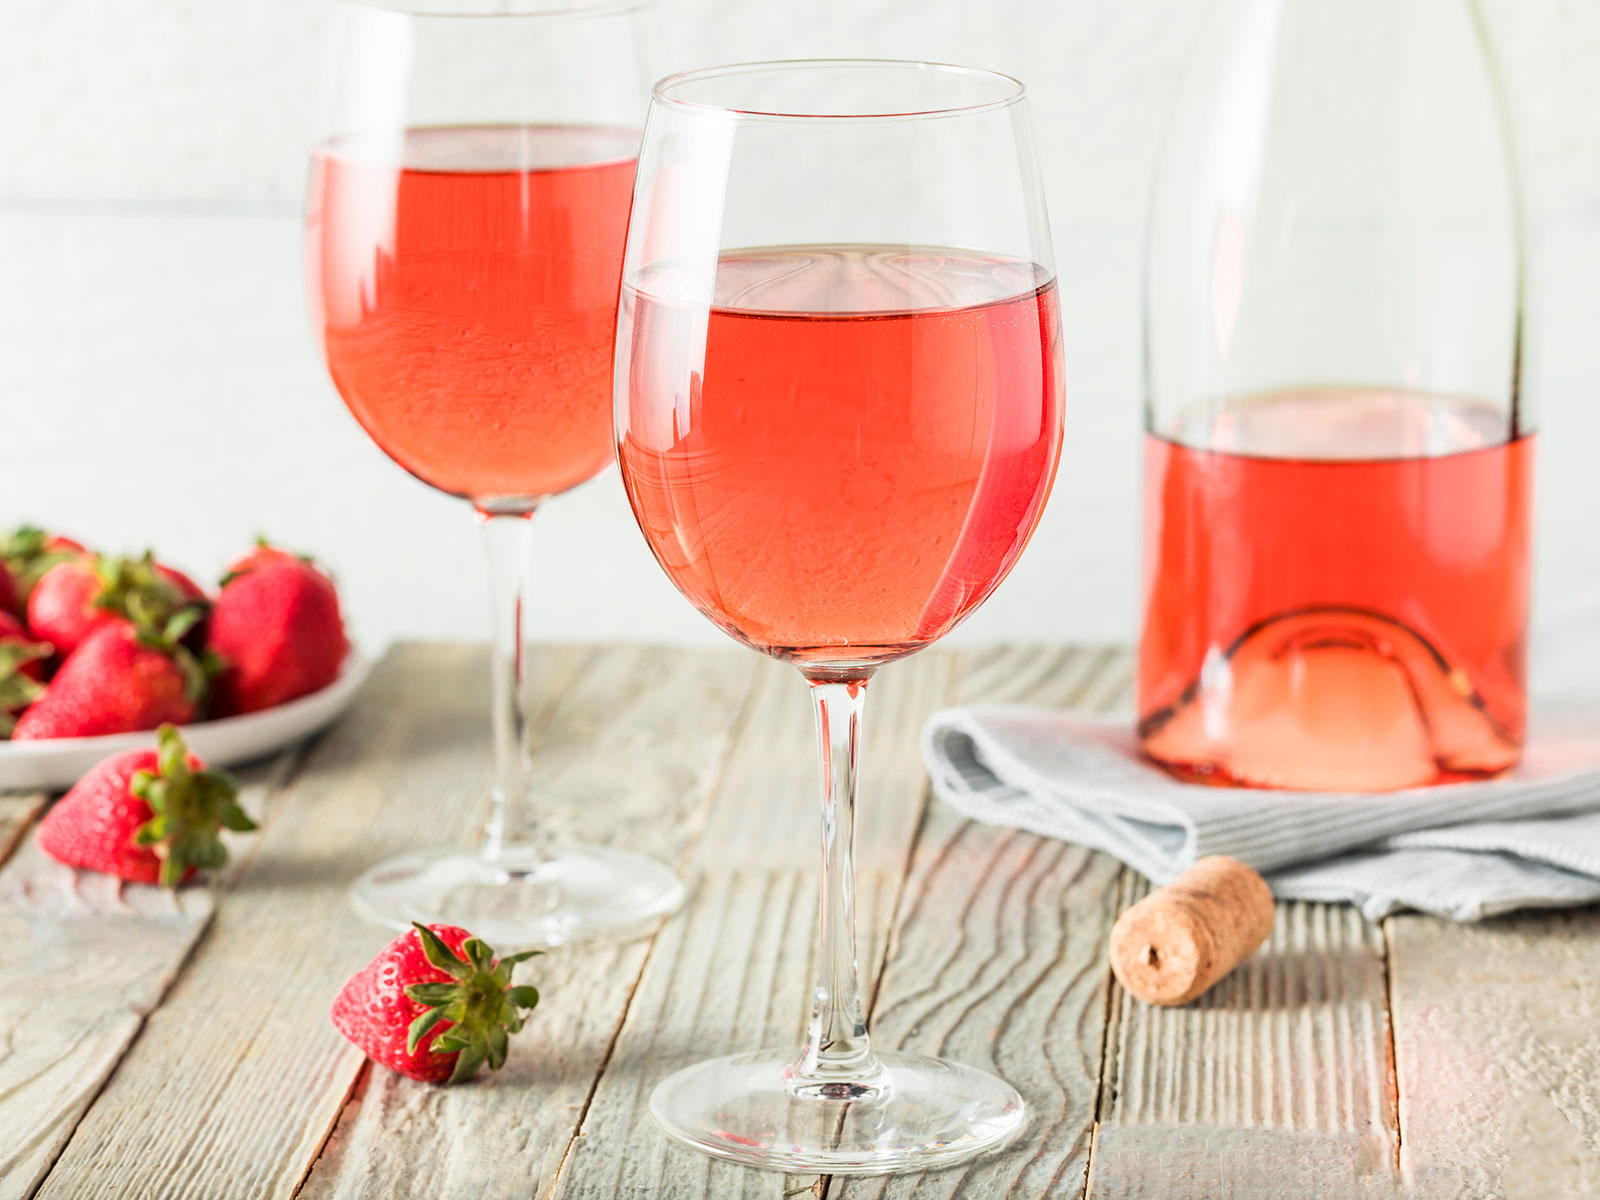 dc drinks the most rose wine